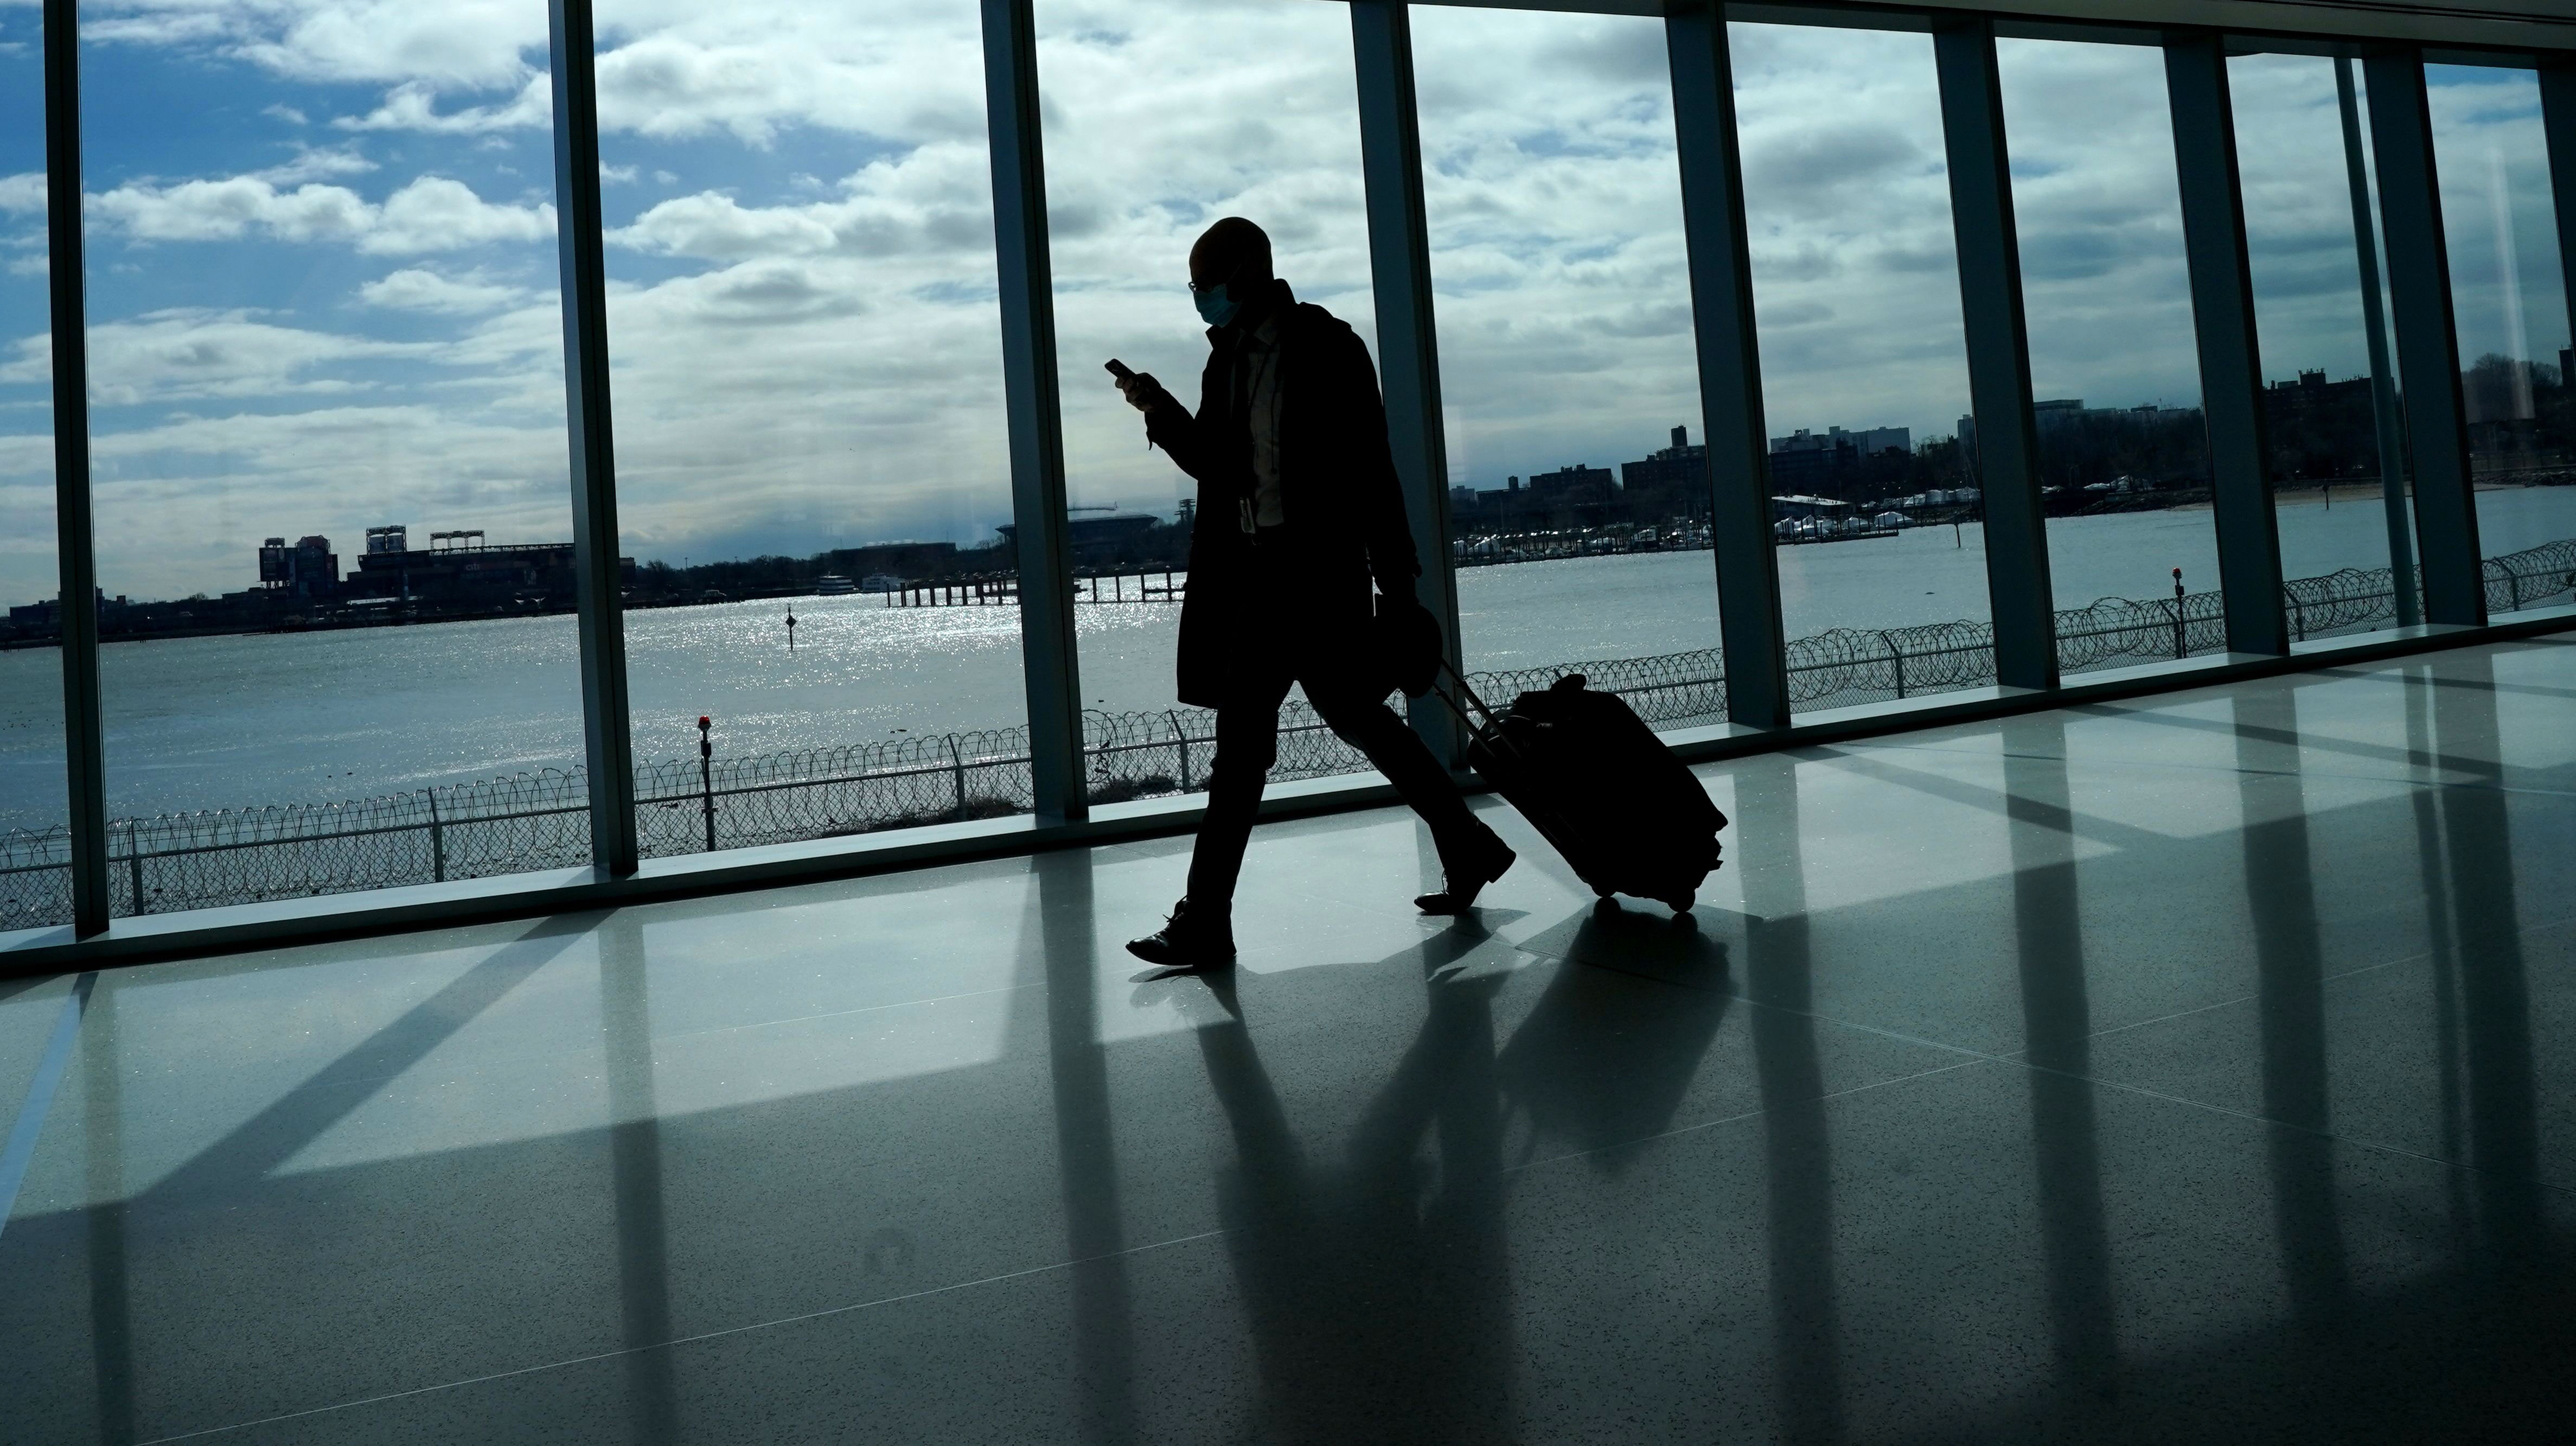 A person walks through LaGuardia Airport in Queens, New York, on March 6.